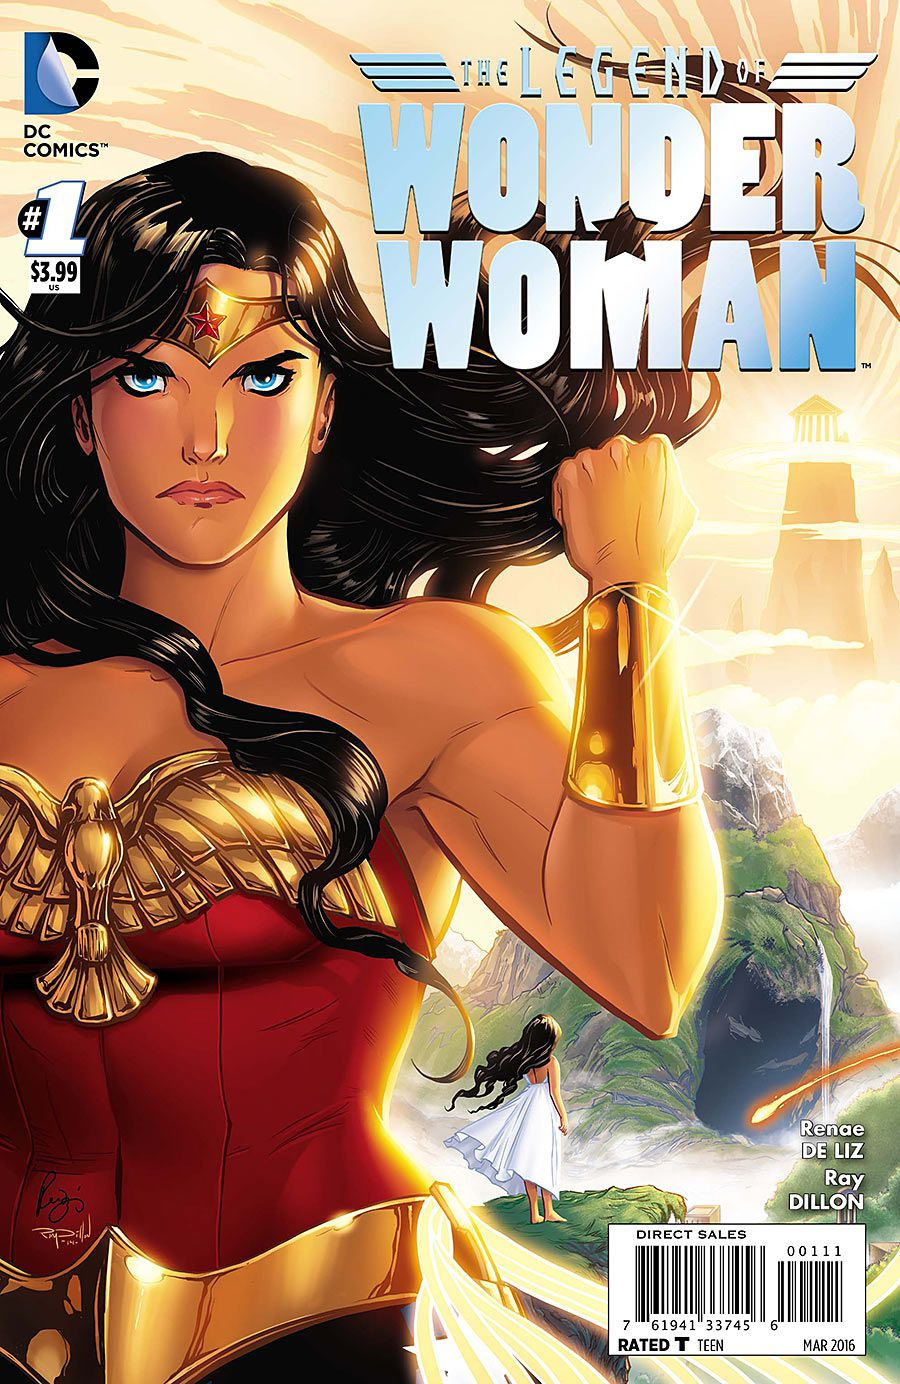 Wonder Woman raises her gauntlet on the cover of The Legend of Wonder Woman #1, DC Comics (2016).